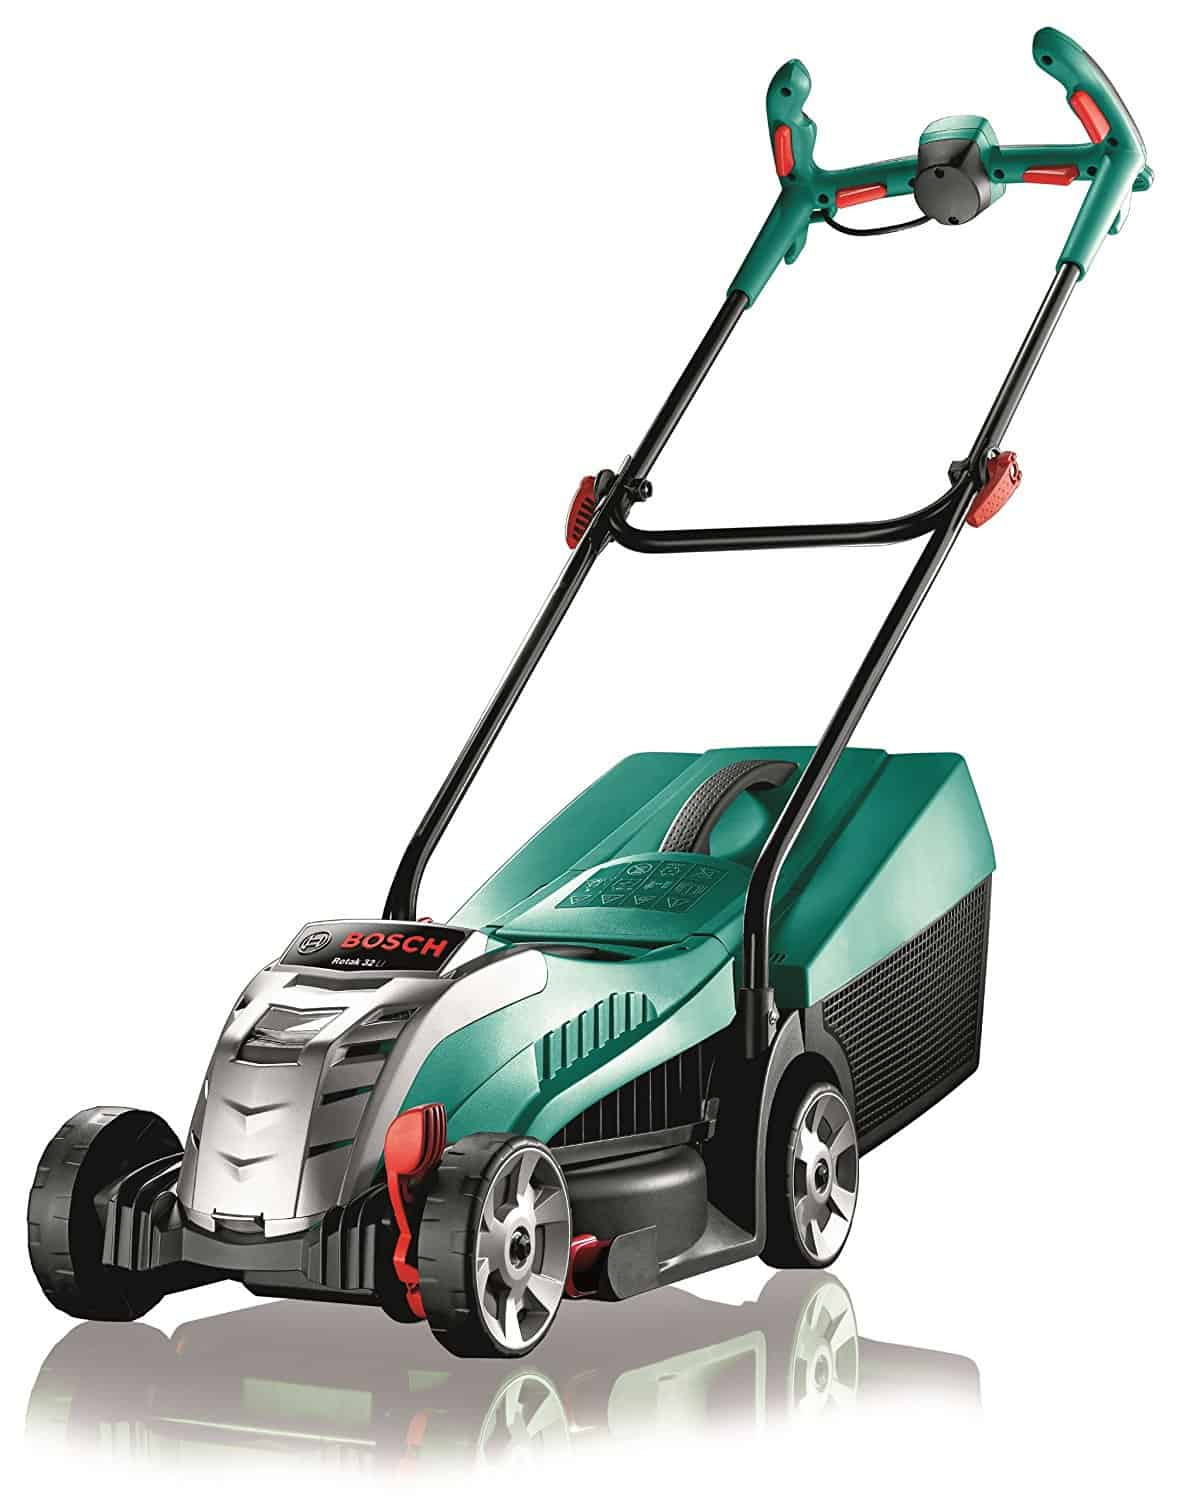 Best Cordless Lawnmower for Urban Gardens – Bosch